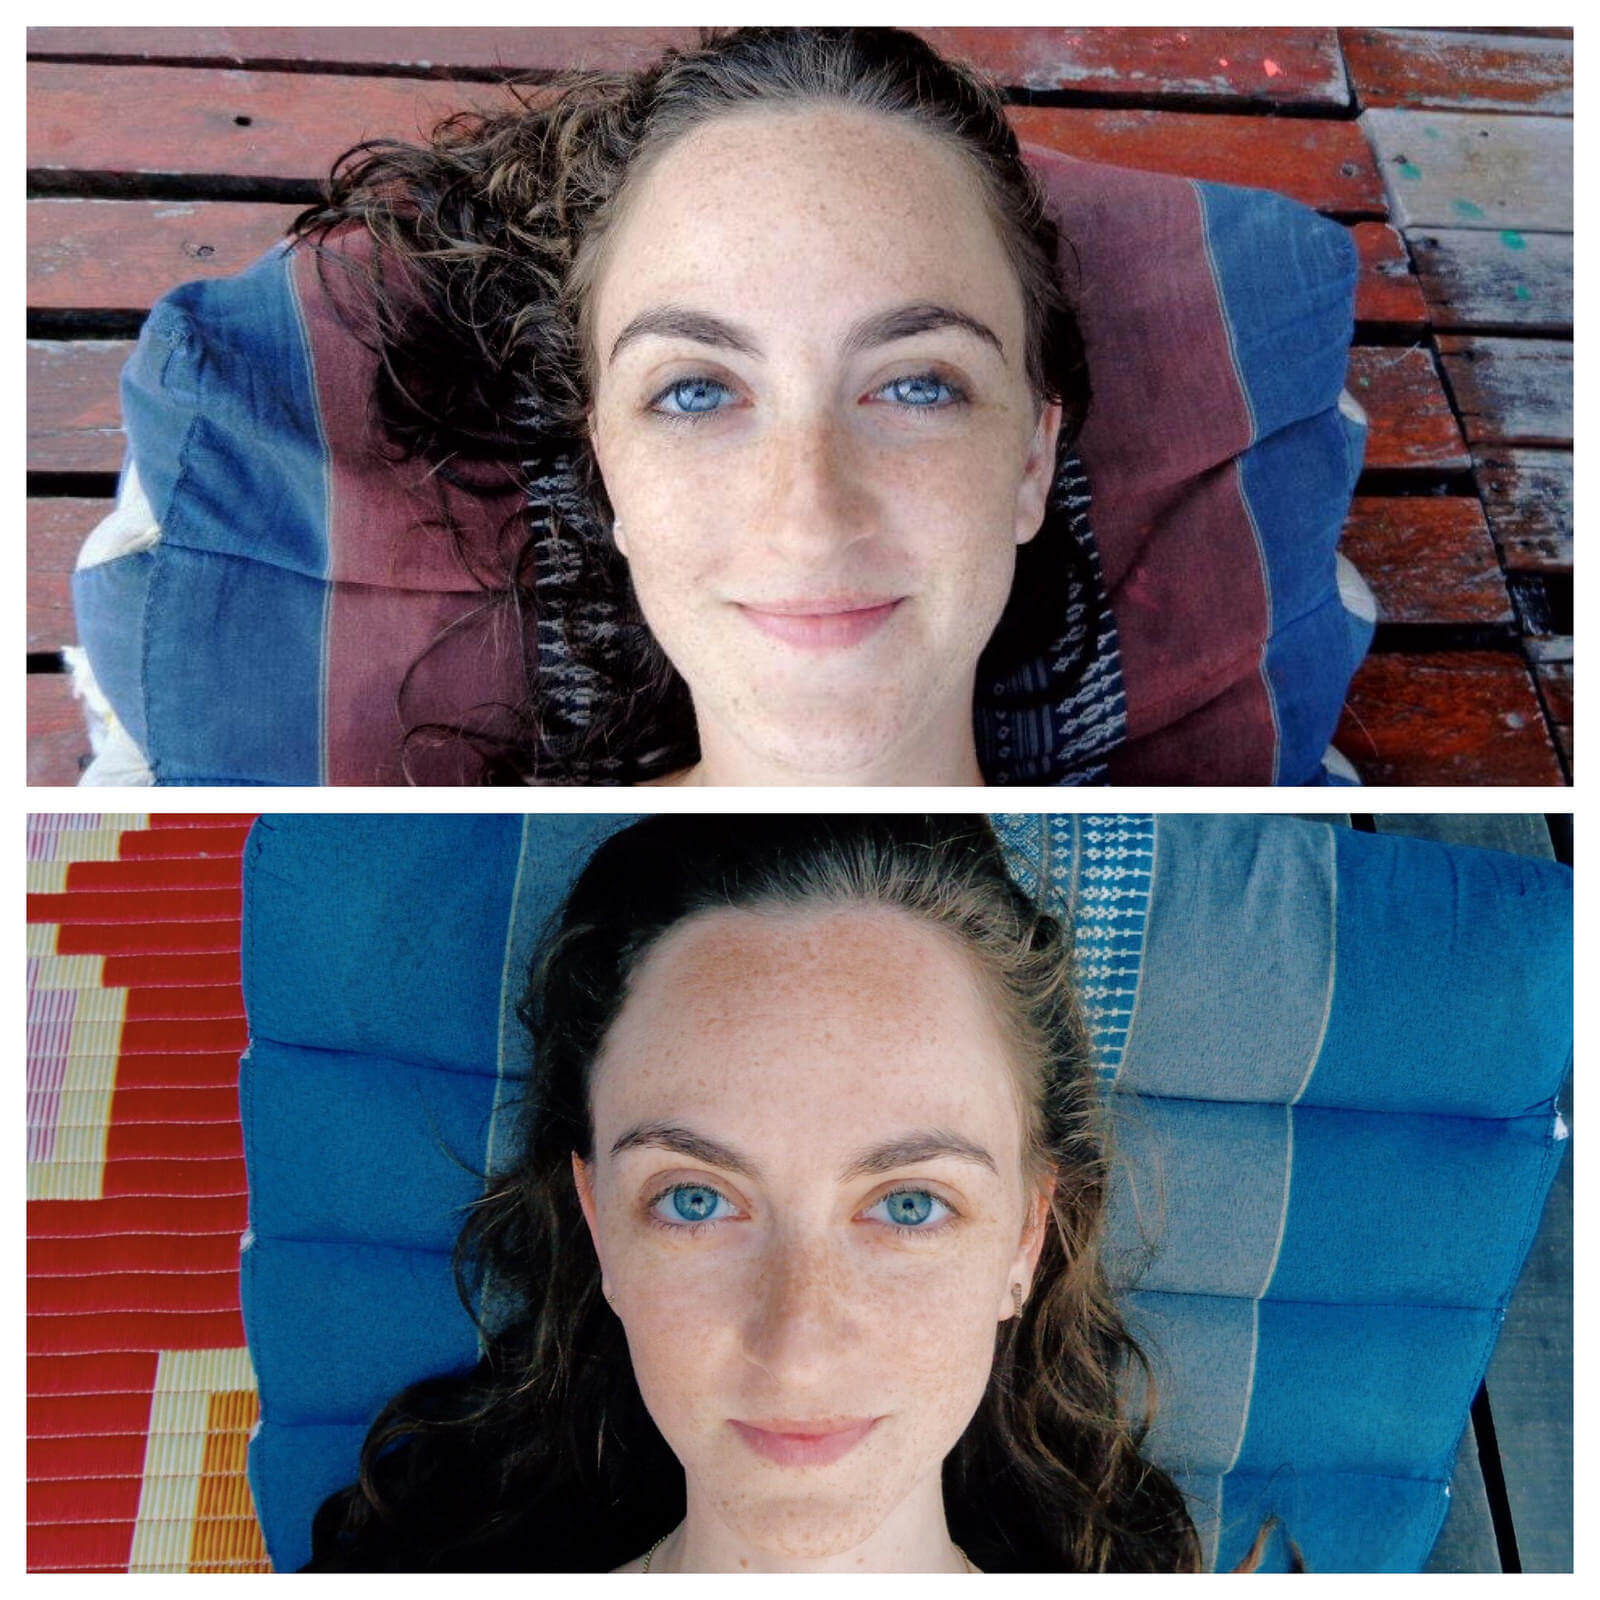 Beach selfie in Koh Phangan, Thailand. Comparing 5 years ago to now.